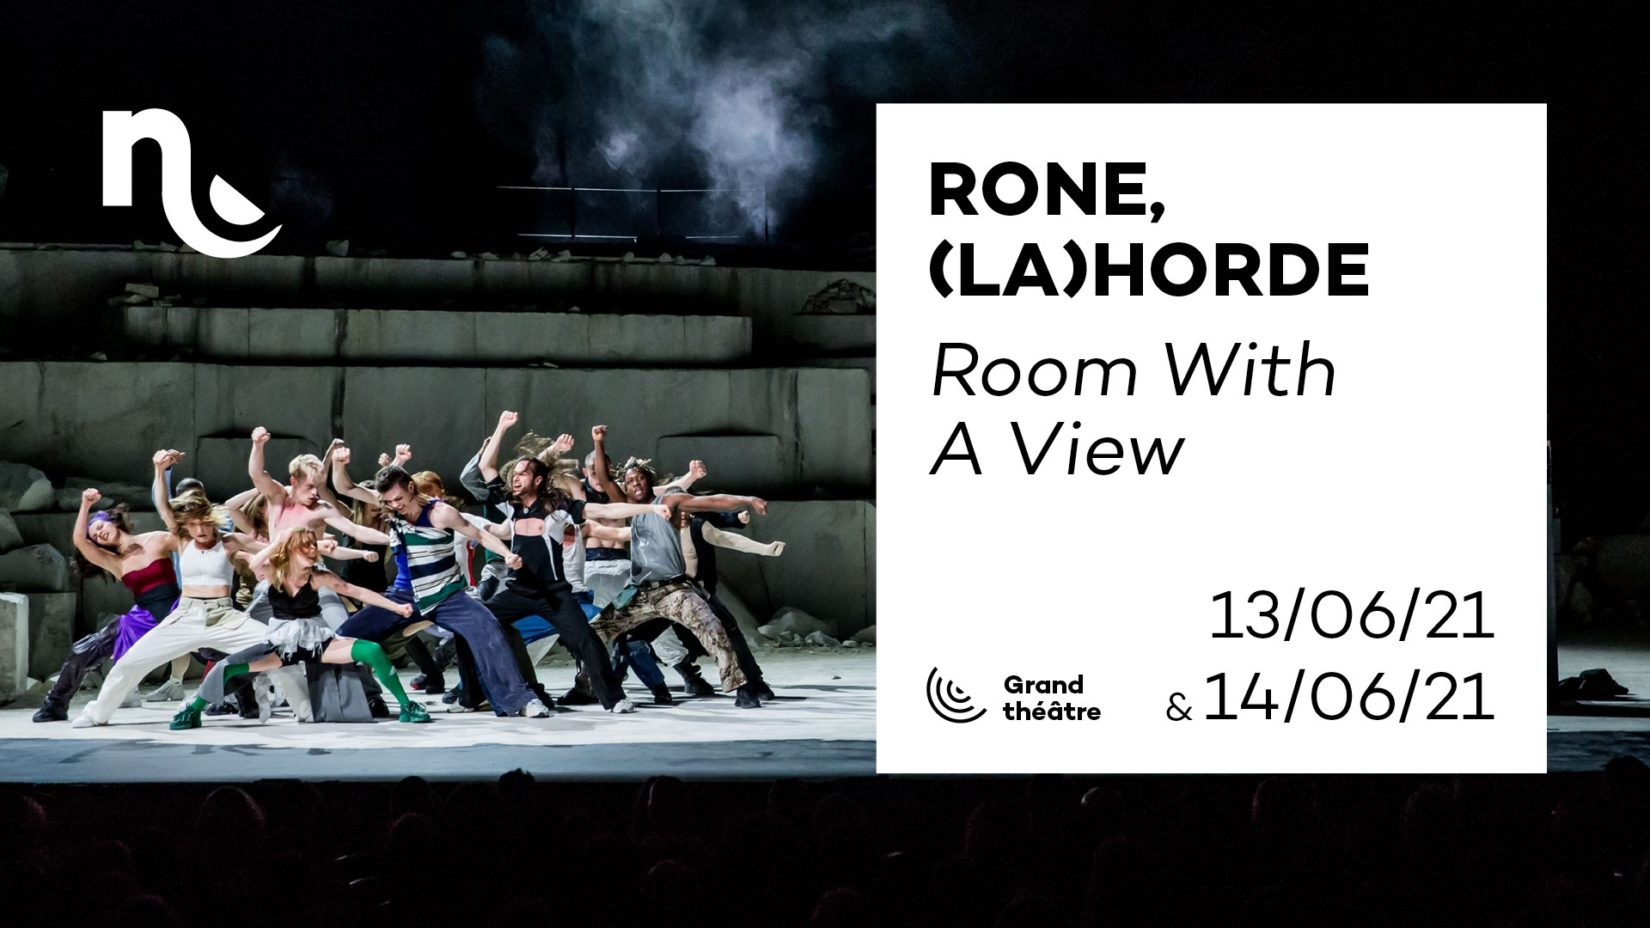 Room With A View - RONE et (LA) HORDE